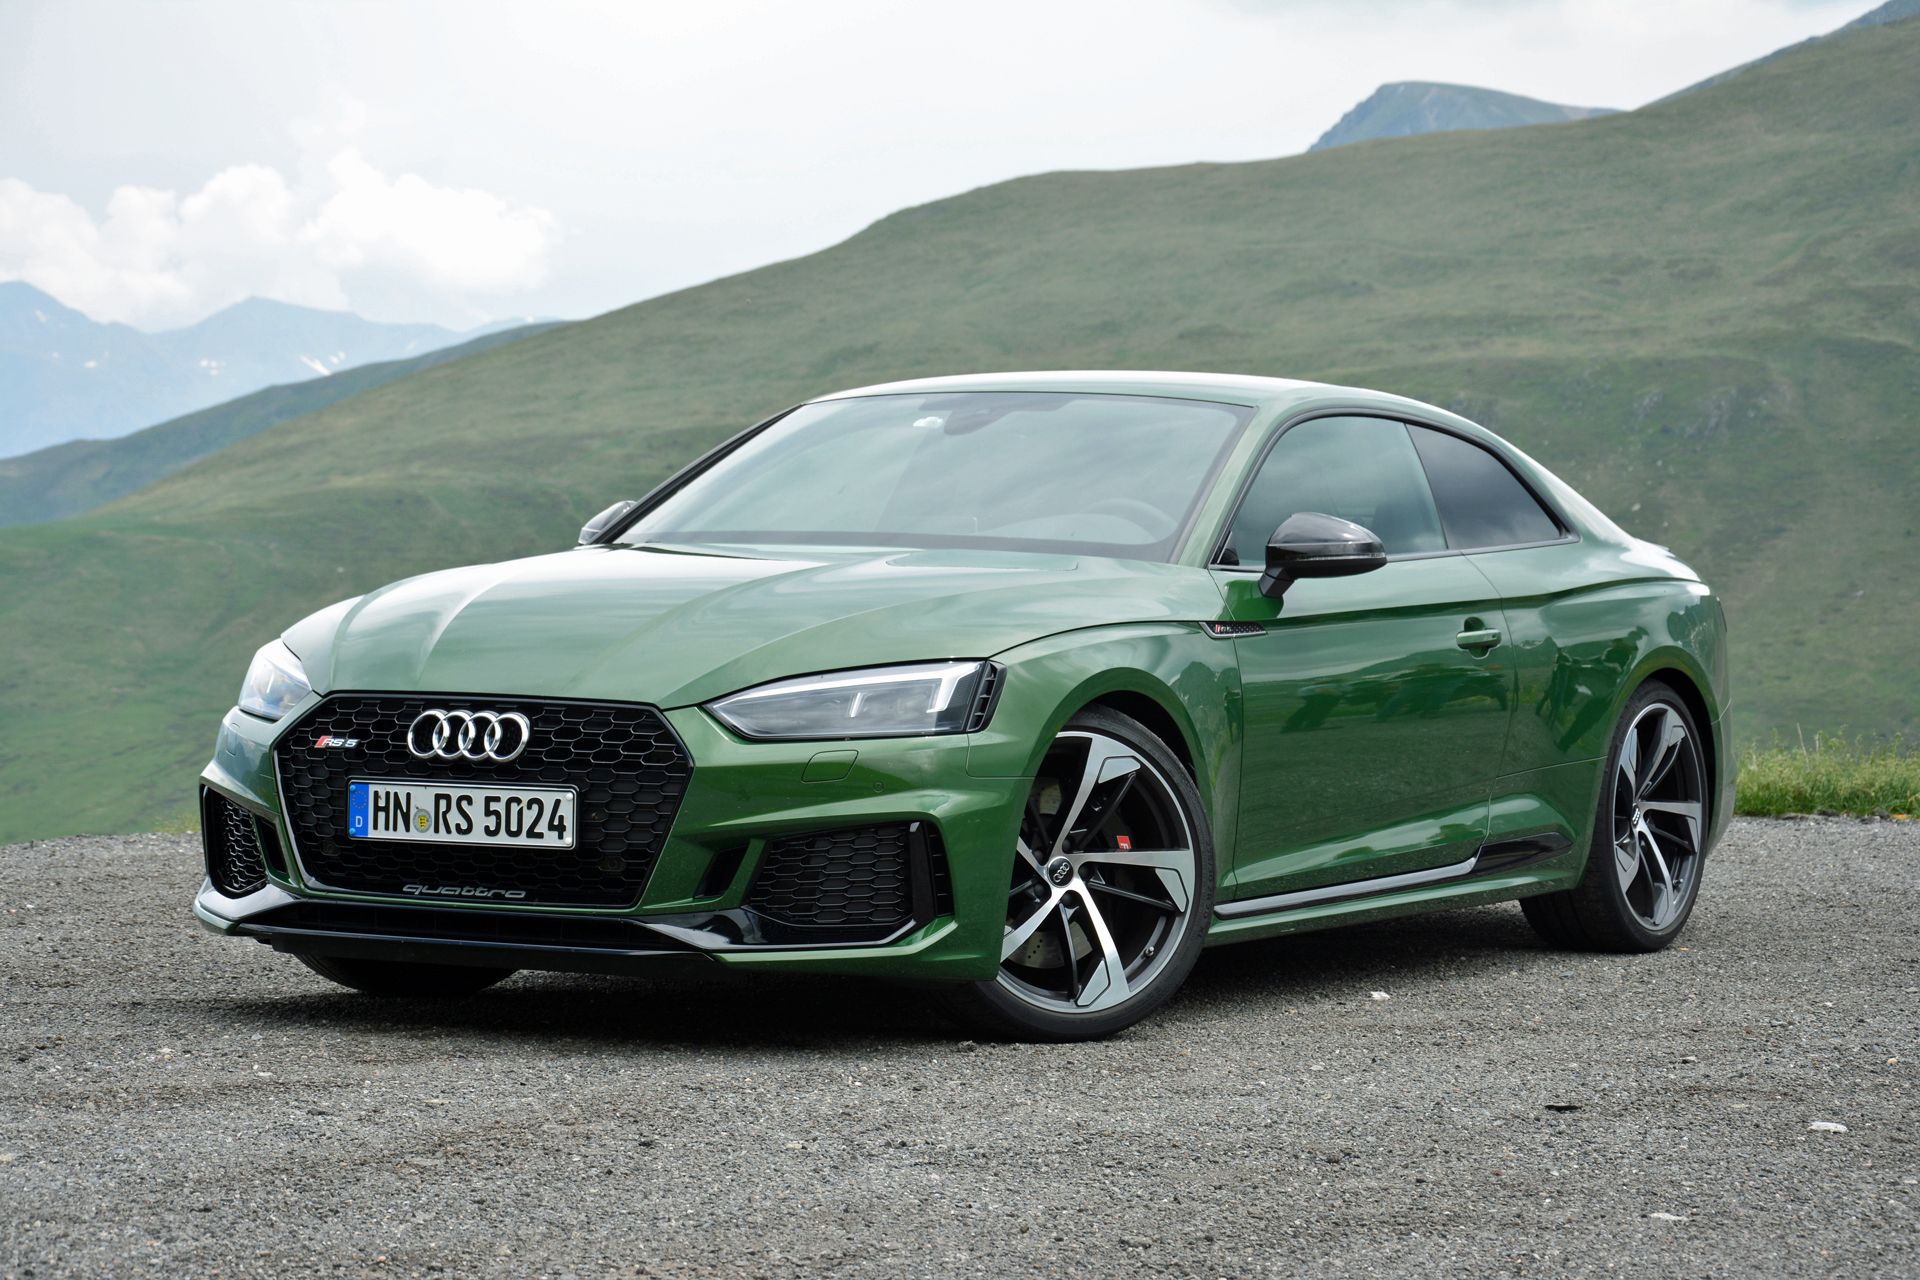 Like All Animals Humans Are Subject To Various Temptations A Salad Is Healthier Than A Burger And Fries But The Whiff You Get Within Audi Rs Audi Rs 5 Audi